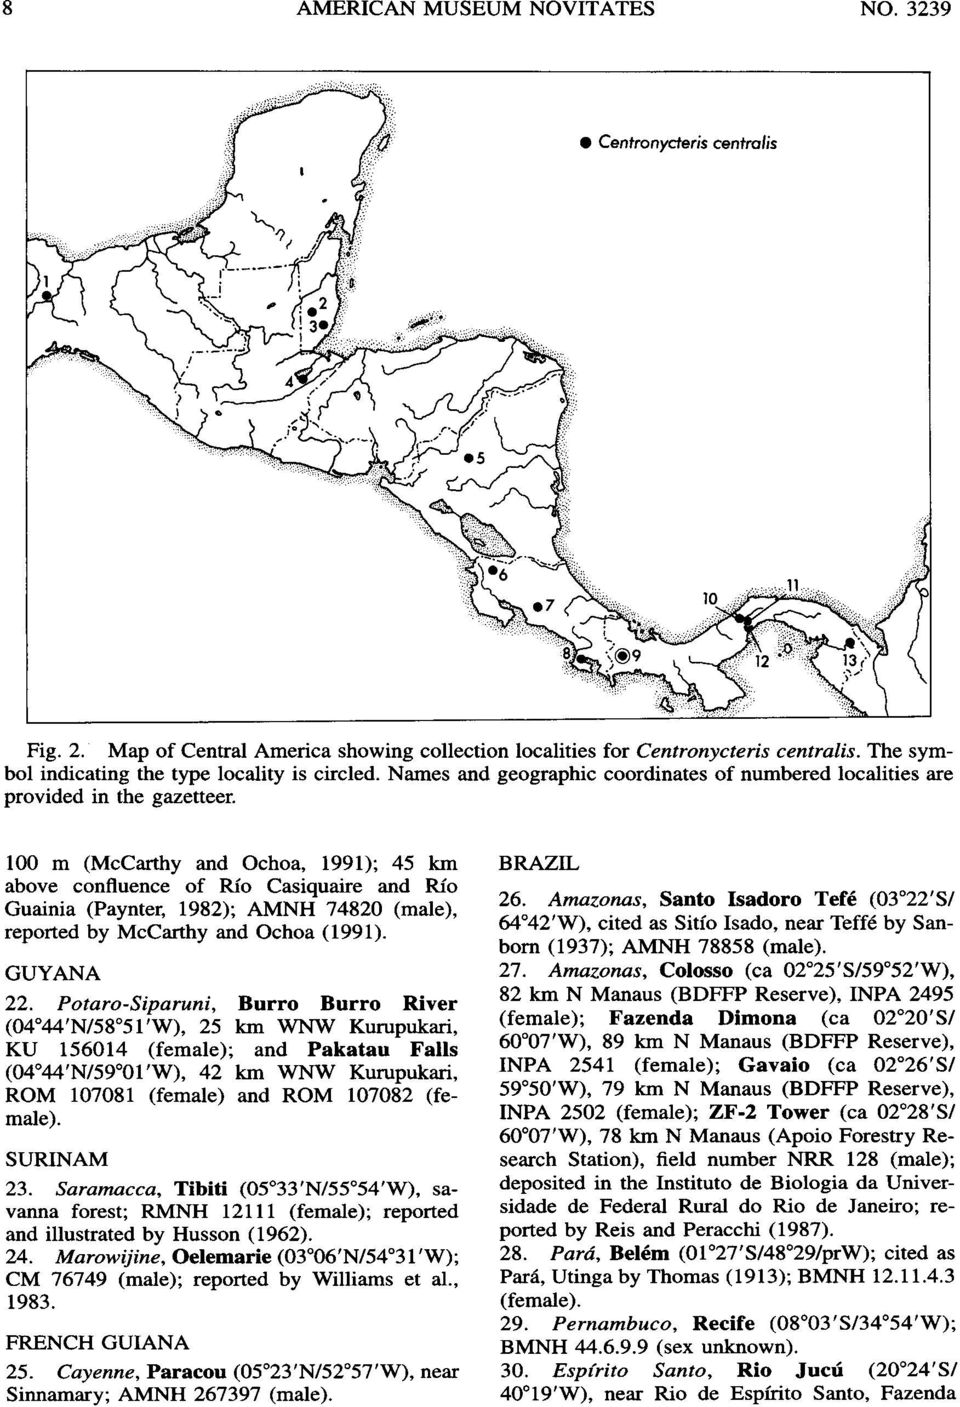 100 m (McCarthy and Ochoa, 1991); 45 km above confluence of Rio Casiquaire and Rio Guainia (Paynter, 1982); AMNH 74820 (male), reported by McCarthy and Ochoa (1991). GUYANA 22.